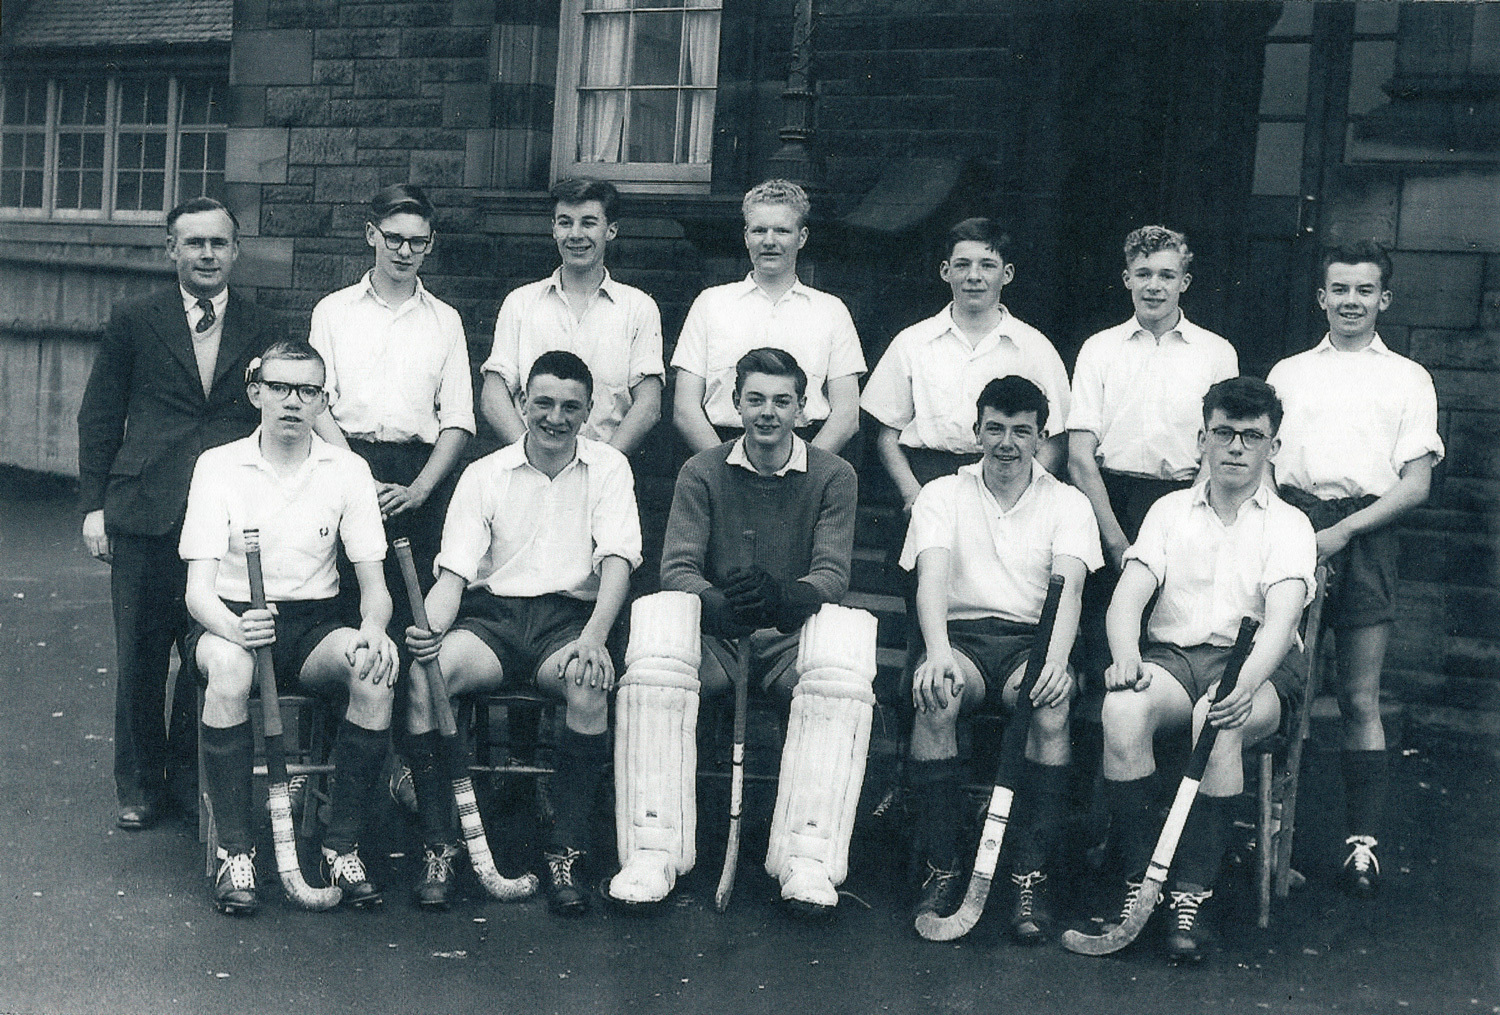 Broughton High School Boys Hockey Team 1959